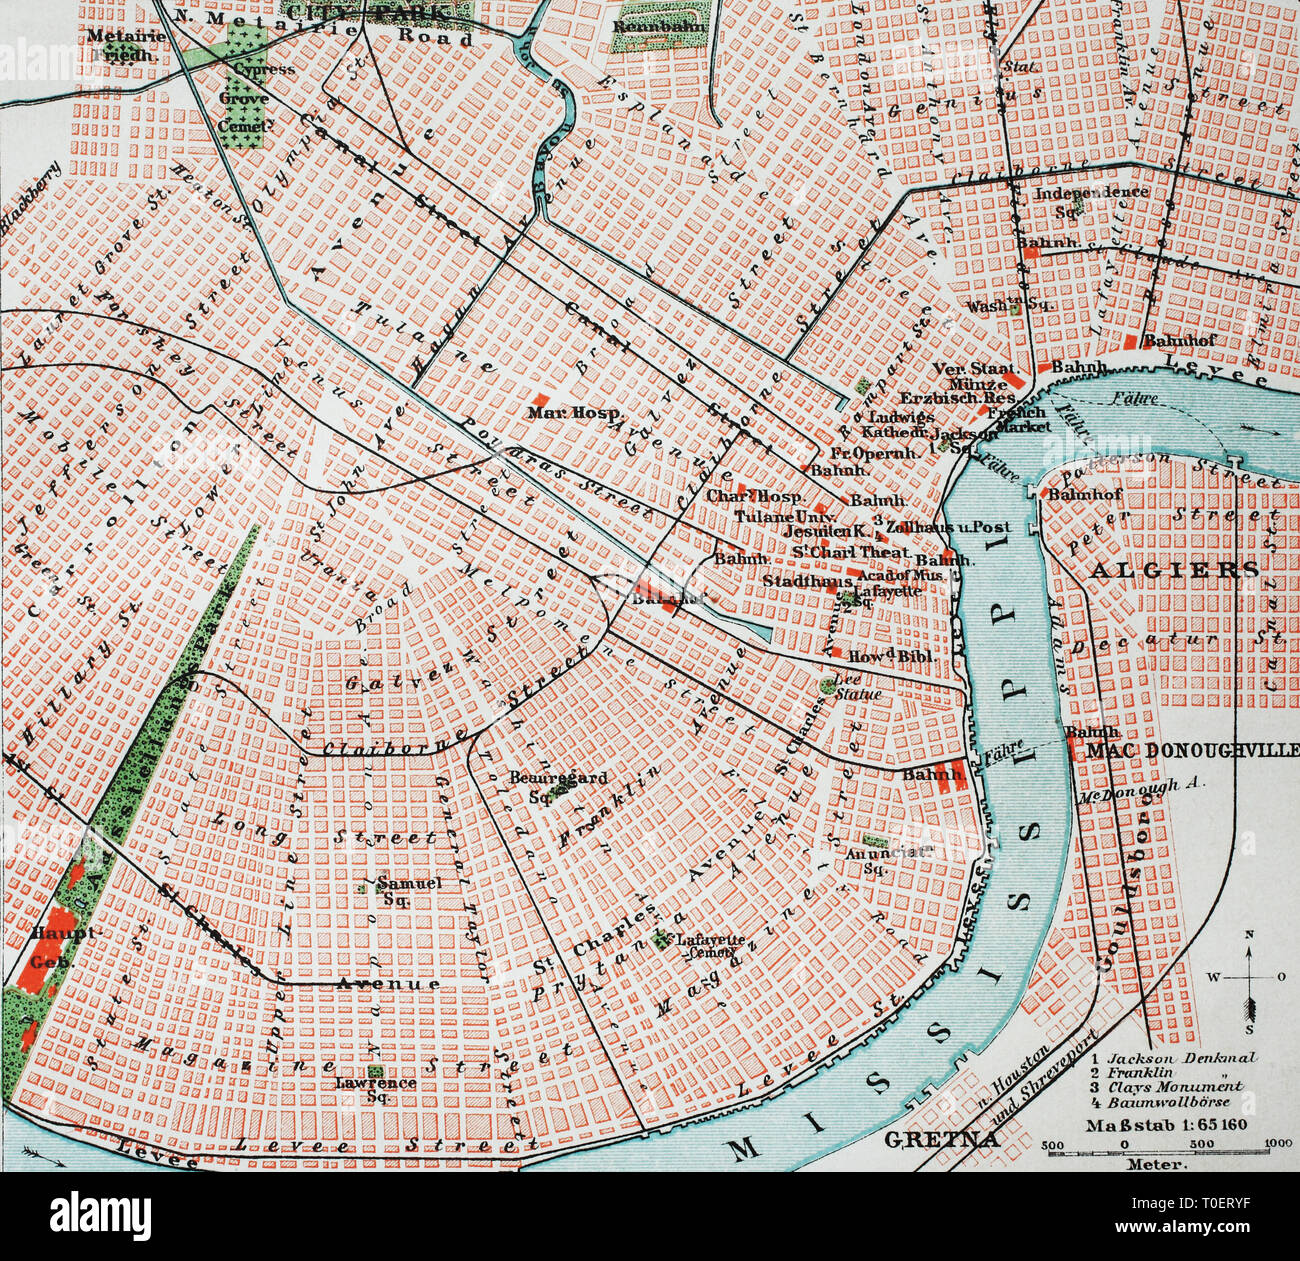 Historical map of the city of New Orleans and the Mississippi river, USA  /  Historischer Stadtplan von New Orleans am Mississippi, USA - Stock Image